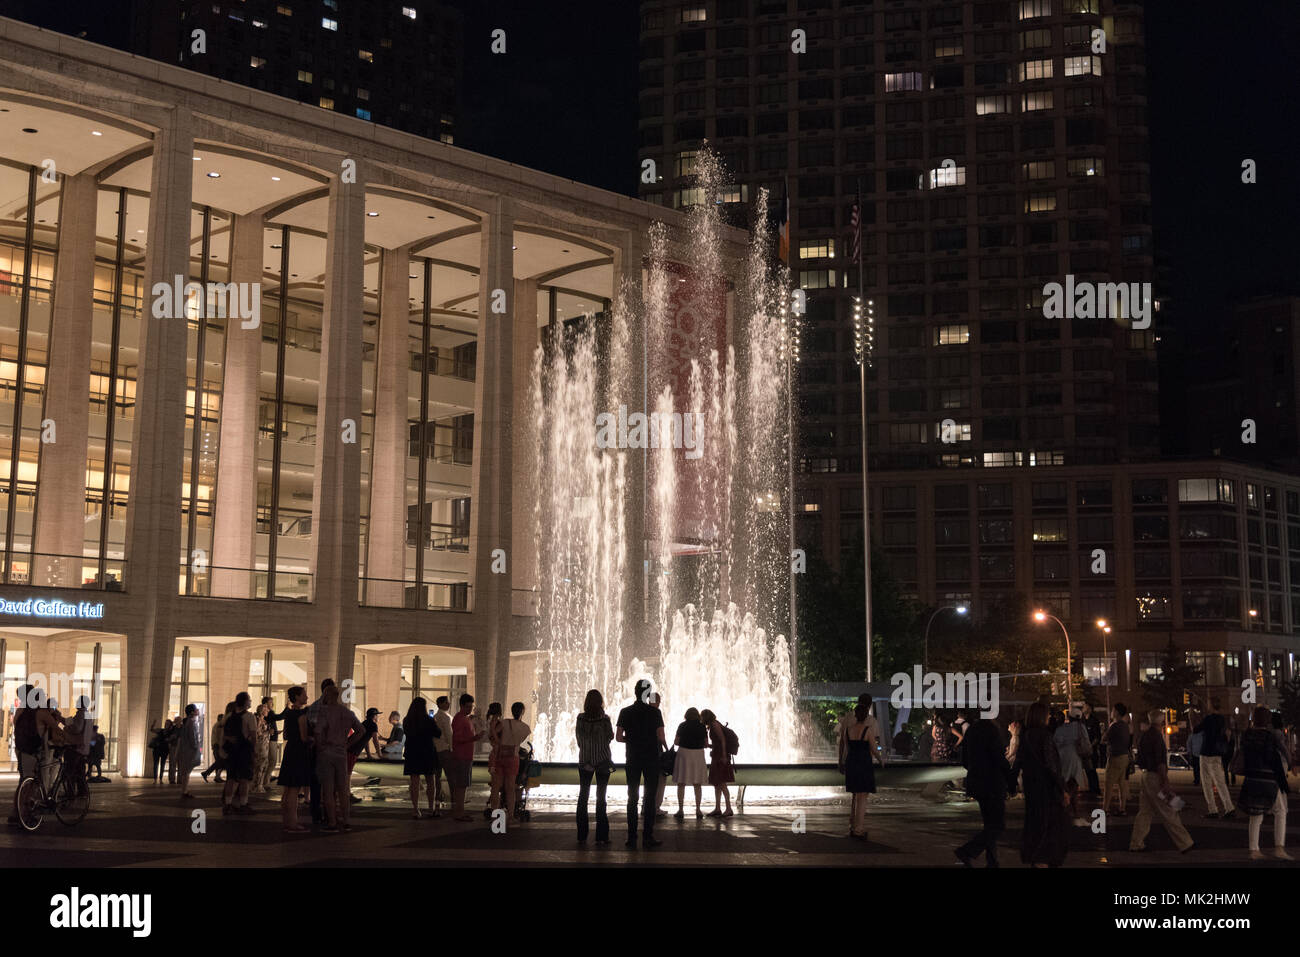 July 4, 2017: People visiting the Lincoln Center, exploring its numerous cultural activities and enjoying a summer evening at the plaza, New York, USA - Stock Image